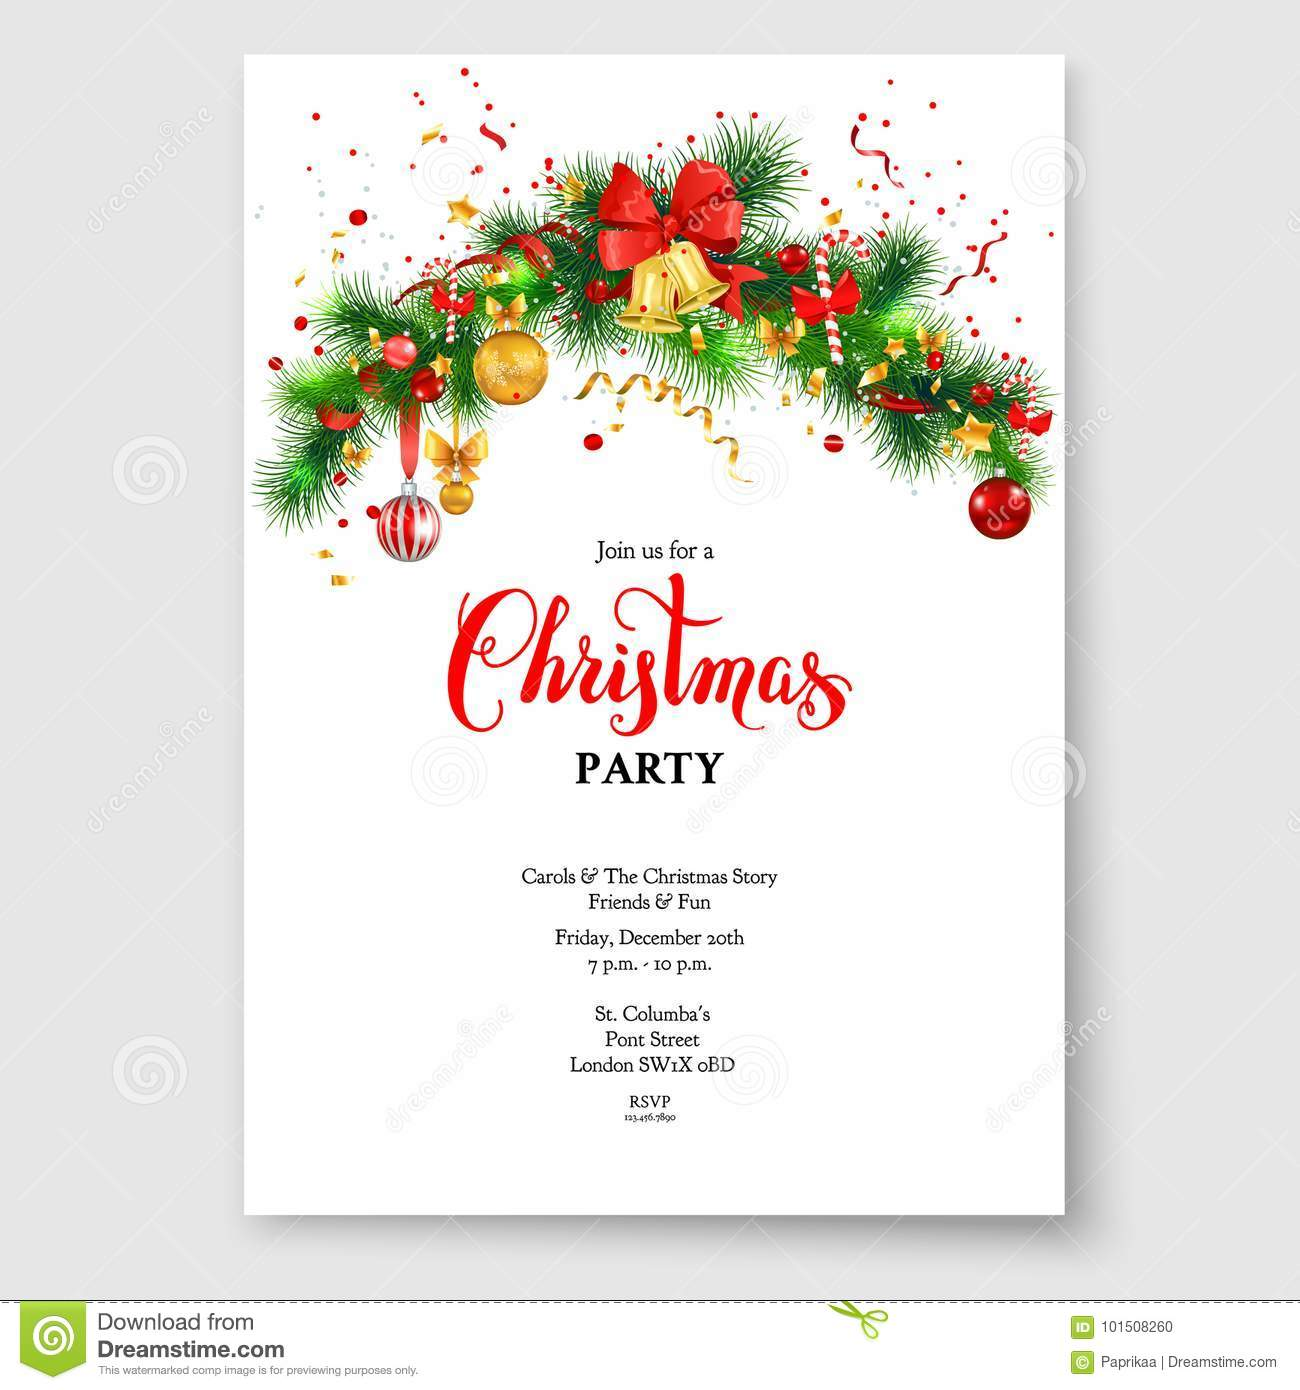 Sample Christmas Tree Decorating Ideas: Christmas Tree And Bells Stock Vector. Illustration Of